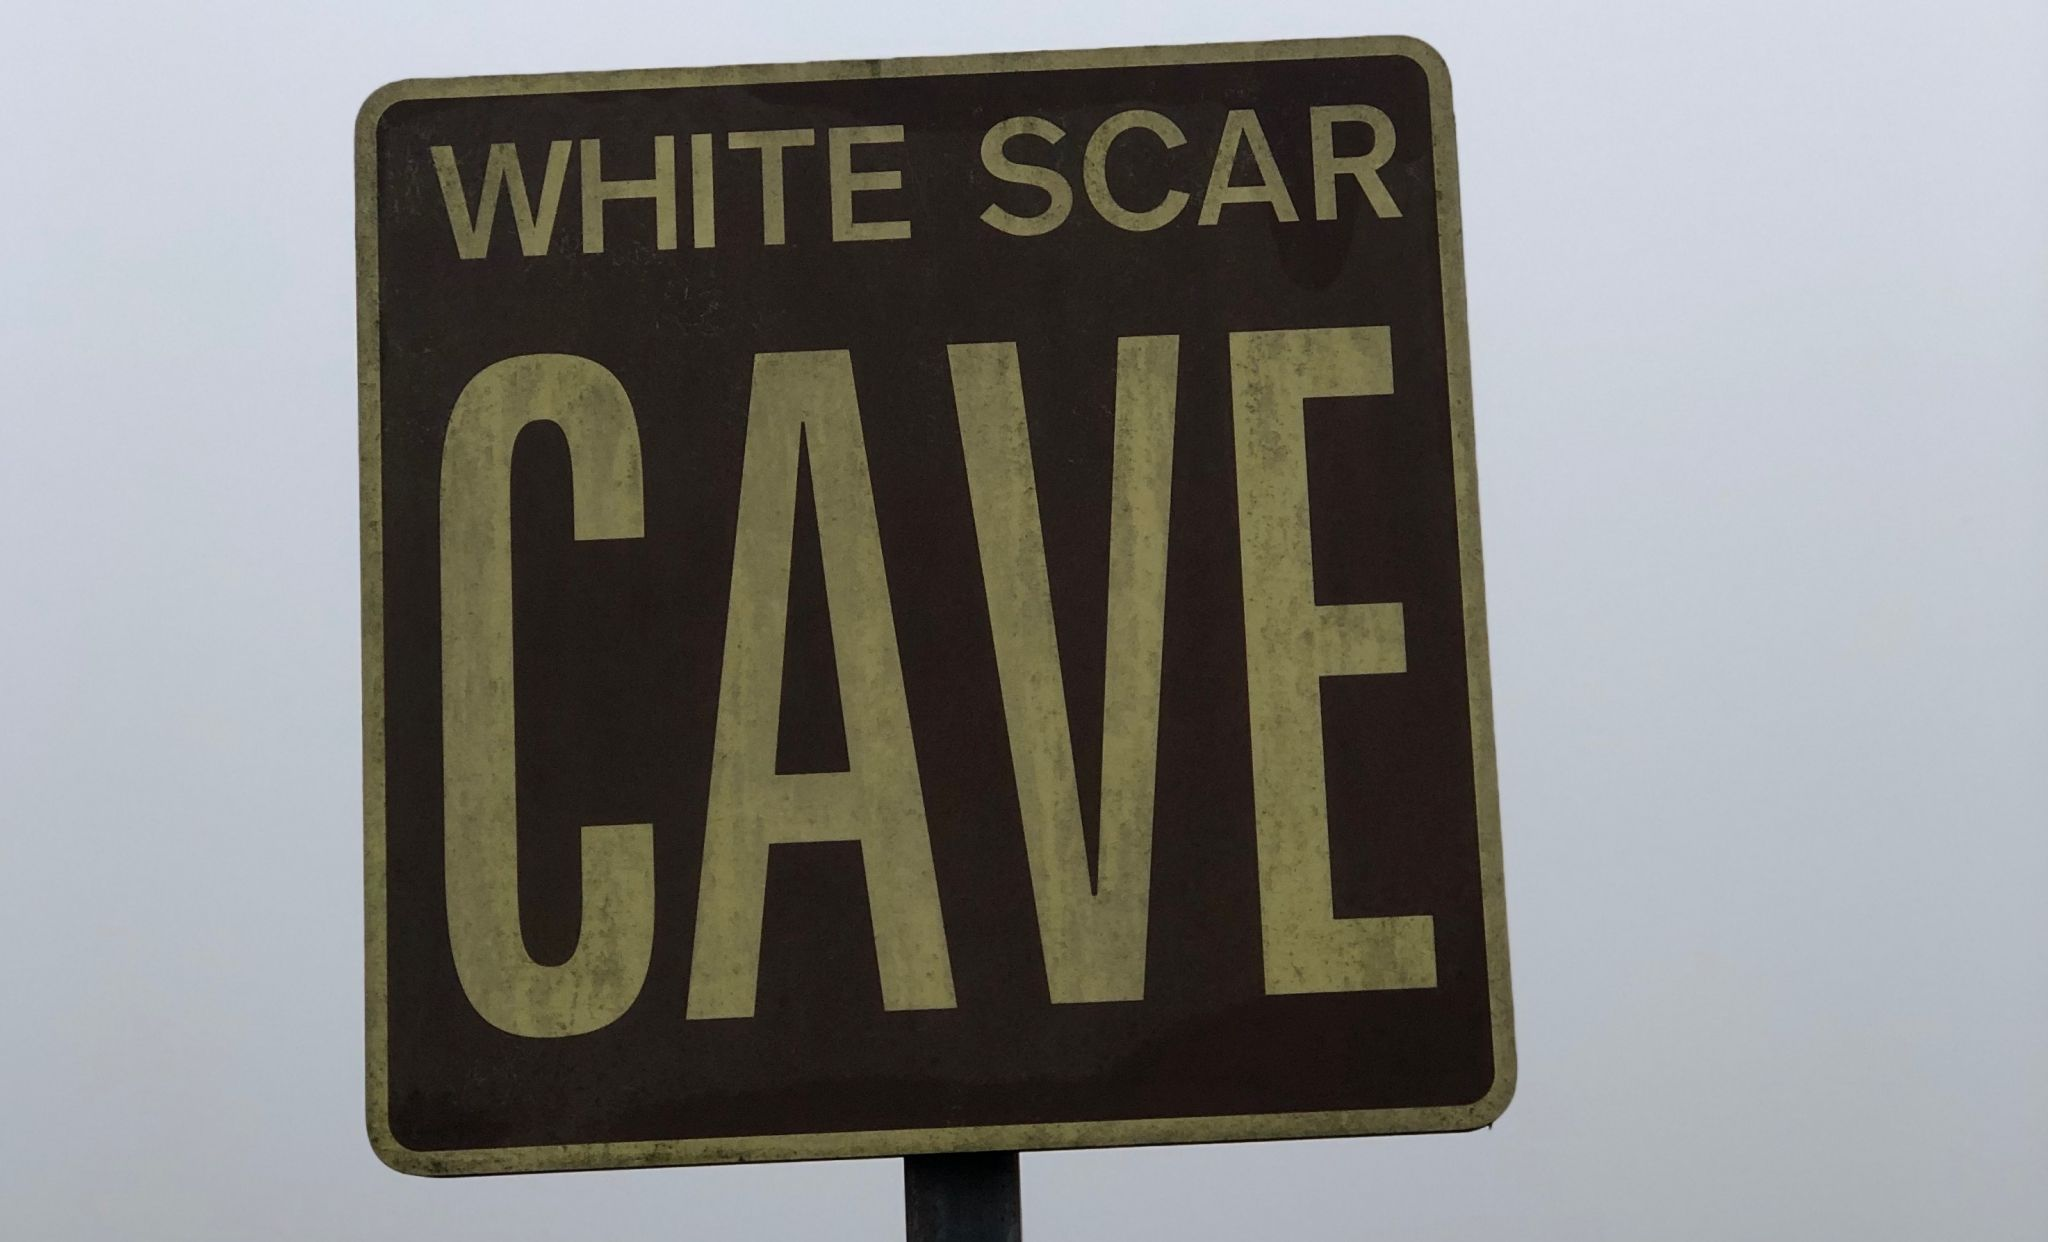 A Yorkshire Adventure to White Scar Cave